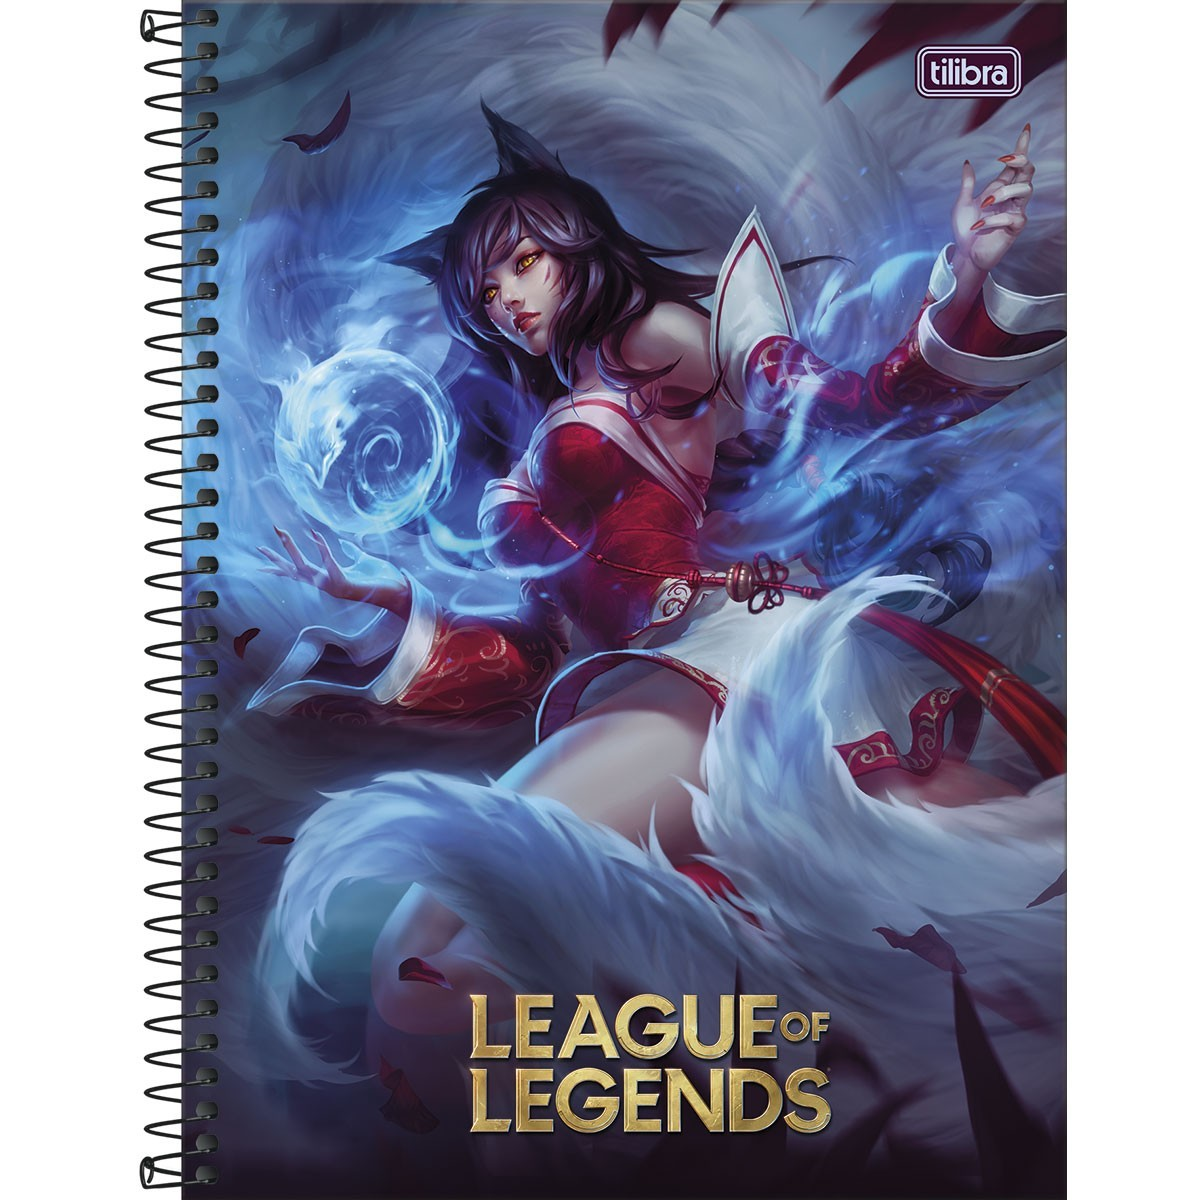 Caderno Espiral Capa Dura Universitário 10 Matérias League of Legends Ahri 160 Folhas